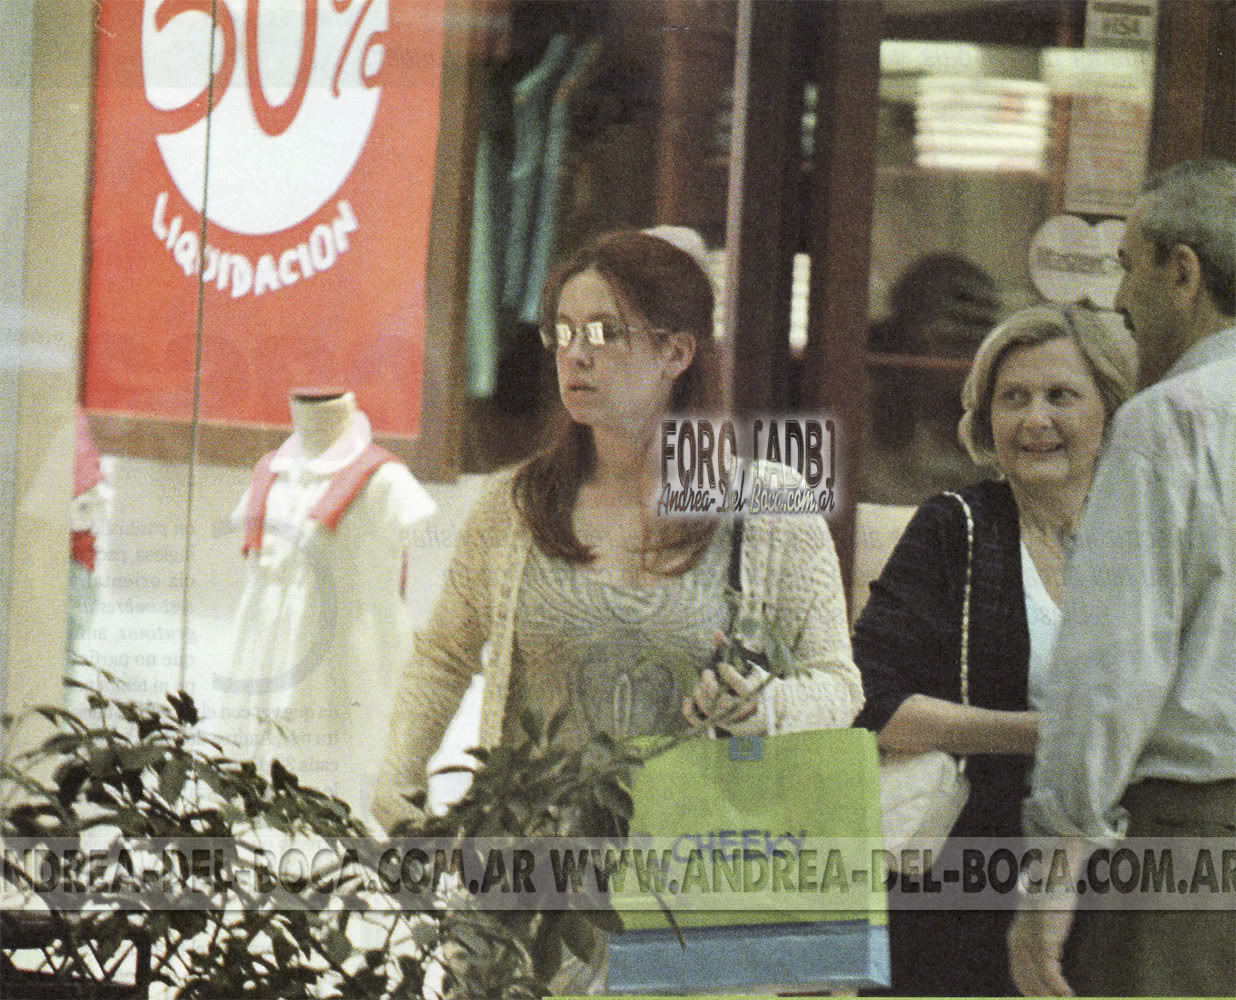 Фотографии / Fotos (часть 4) - Página 5 Andrea-shopping